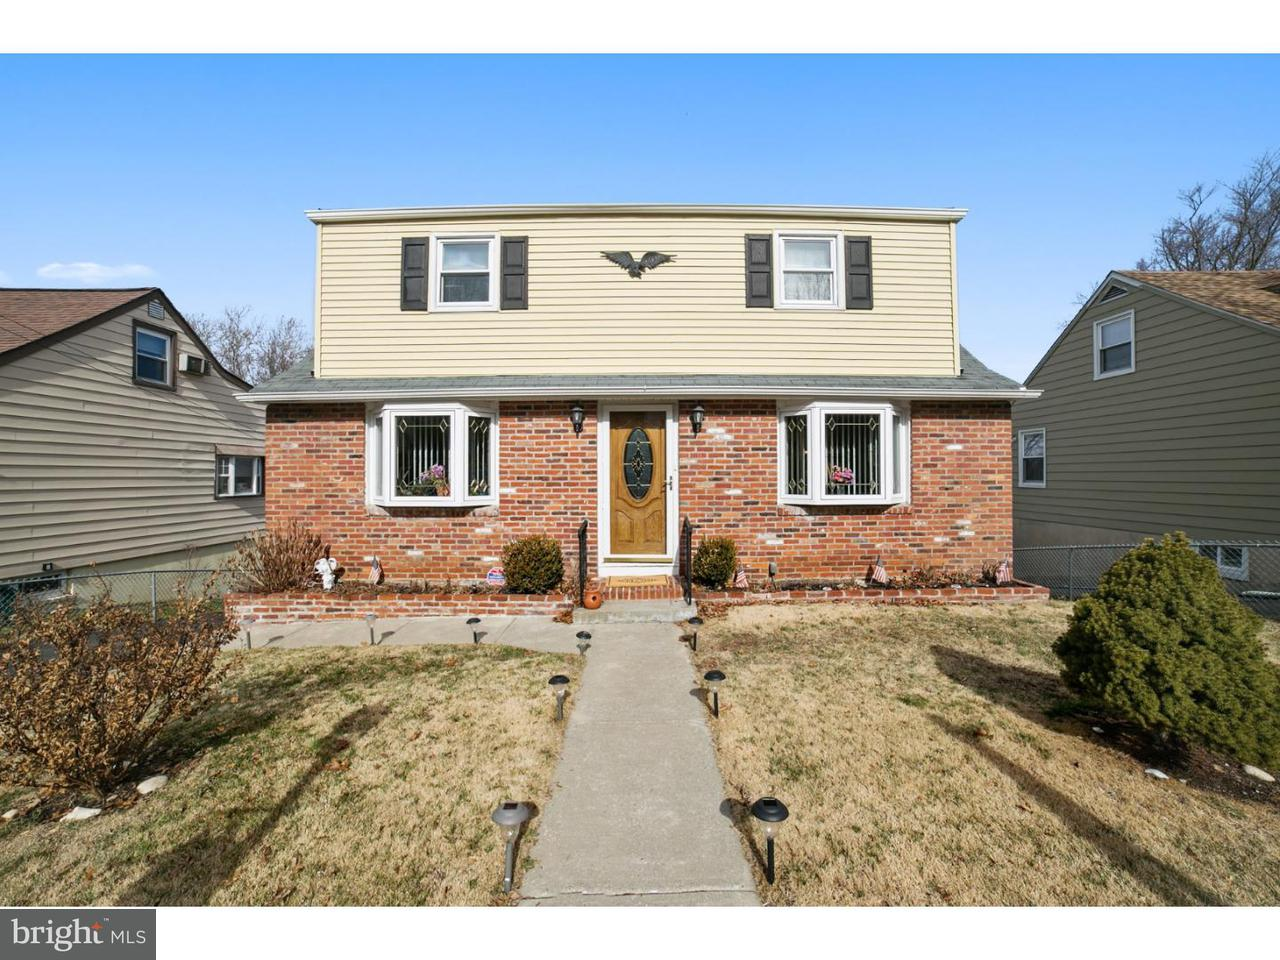 Single Family Home for Sale at 914 TYSON Avenue Roslyn, Pennsylvania 19001 United States